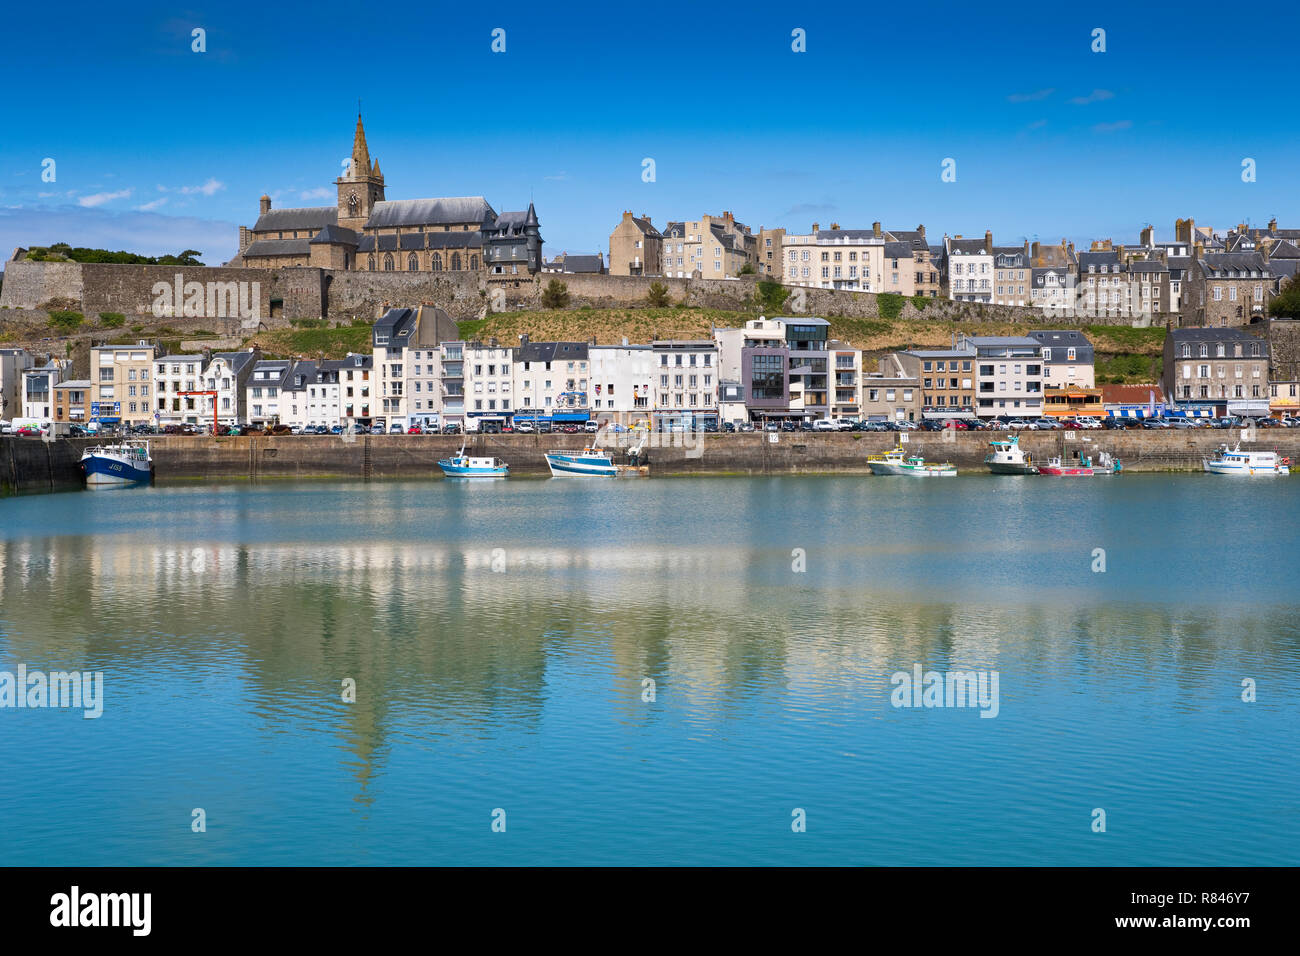 The harbour of Granville, with Notre-Dame church in the background, Granville, Normandy, France - Stock Image